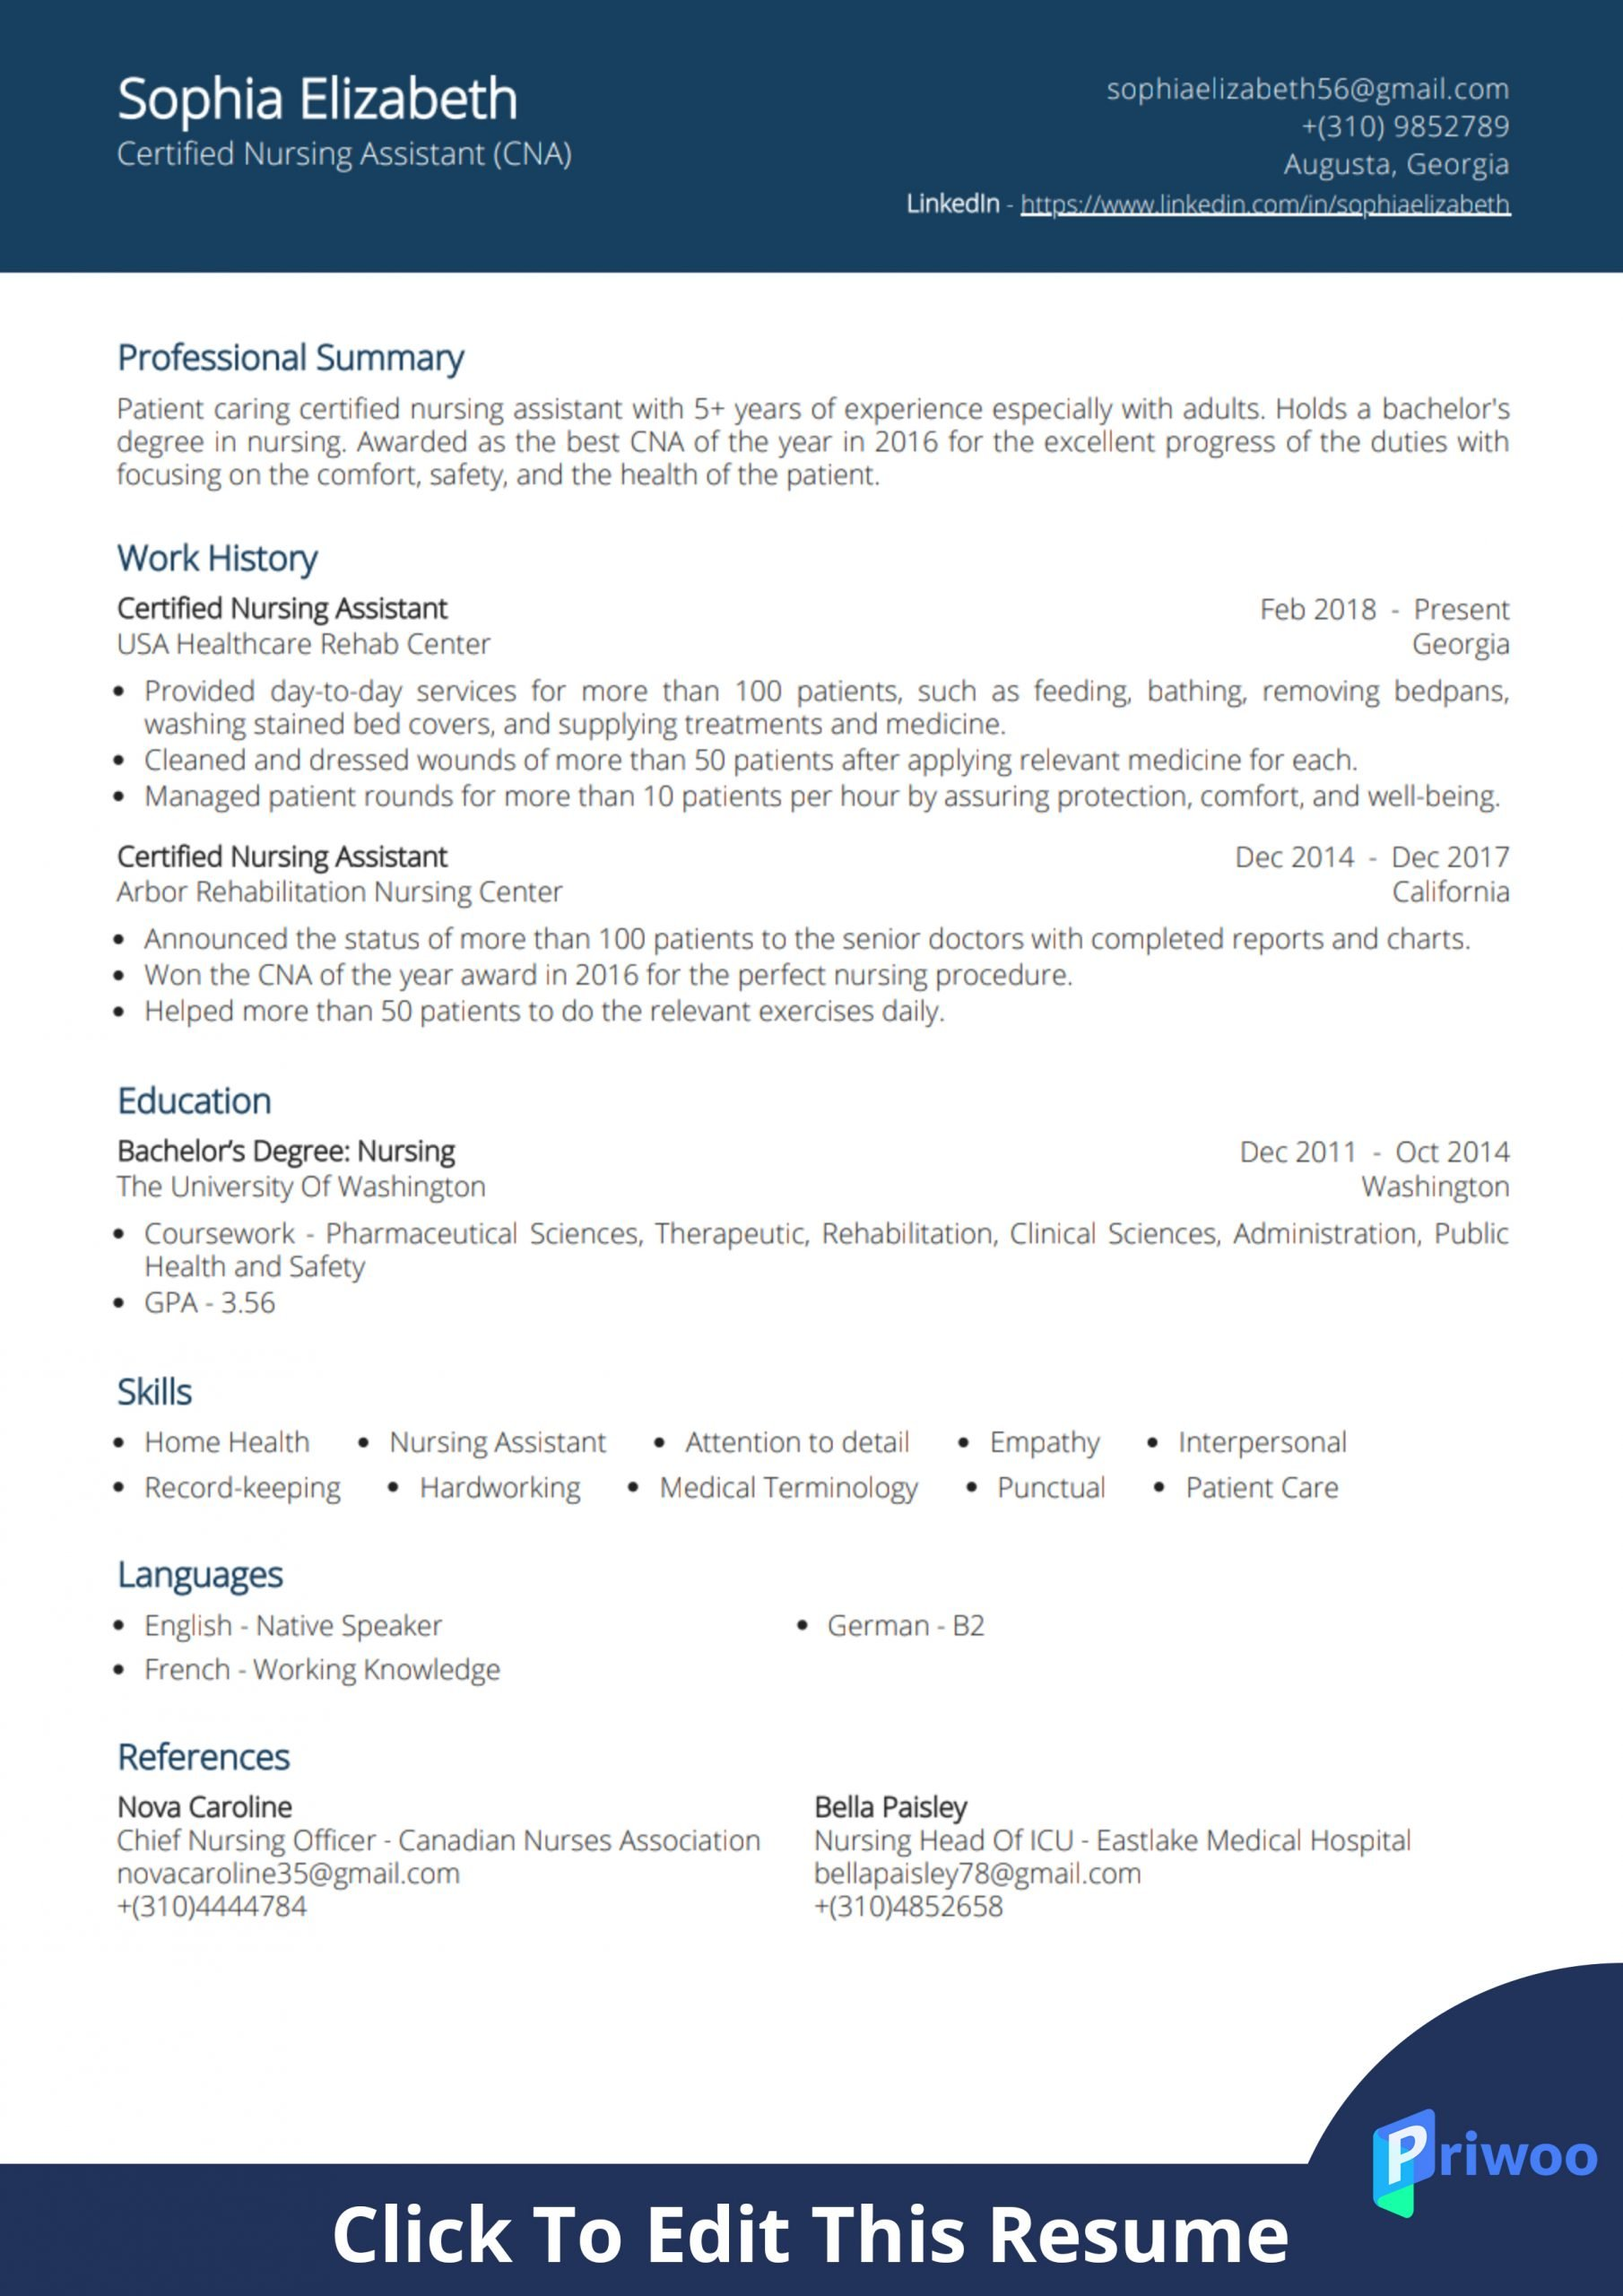 certified nursing assistant cna resume example priwoo for hospital scaled sample Resume Cna Resume For Hospital